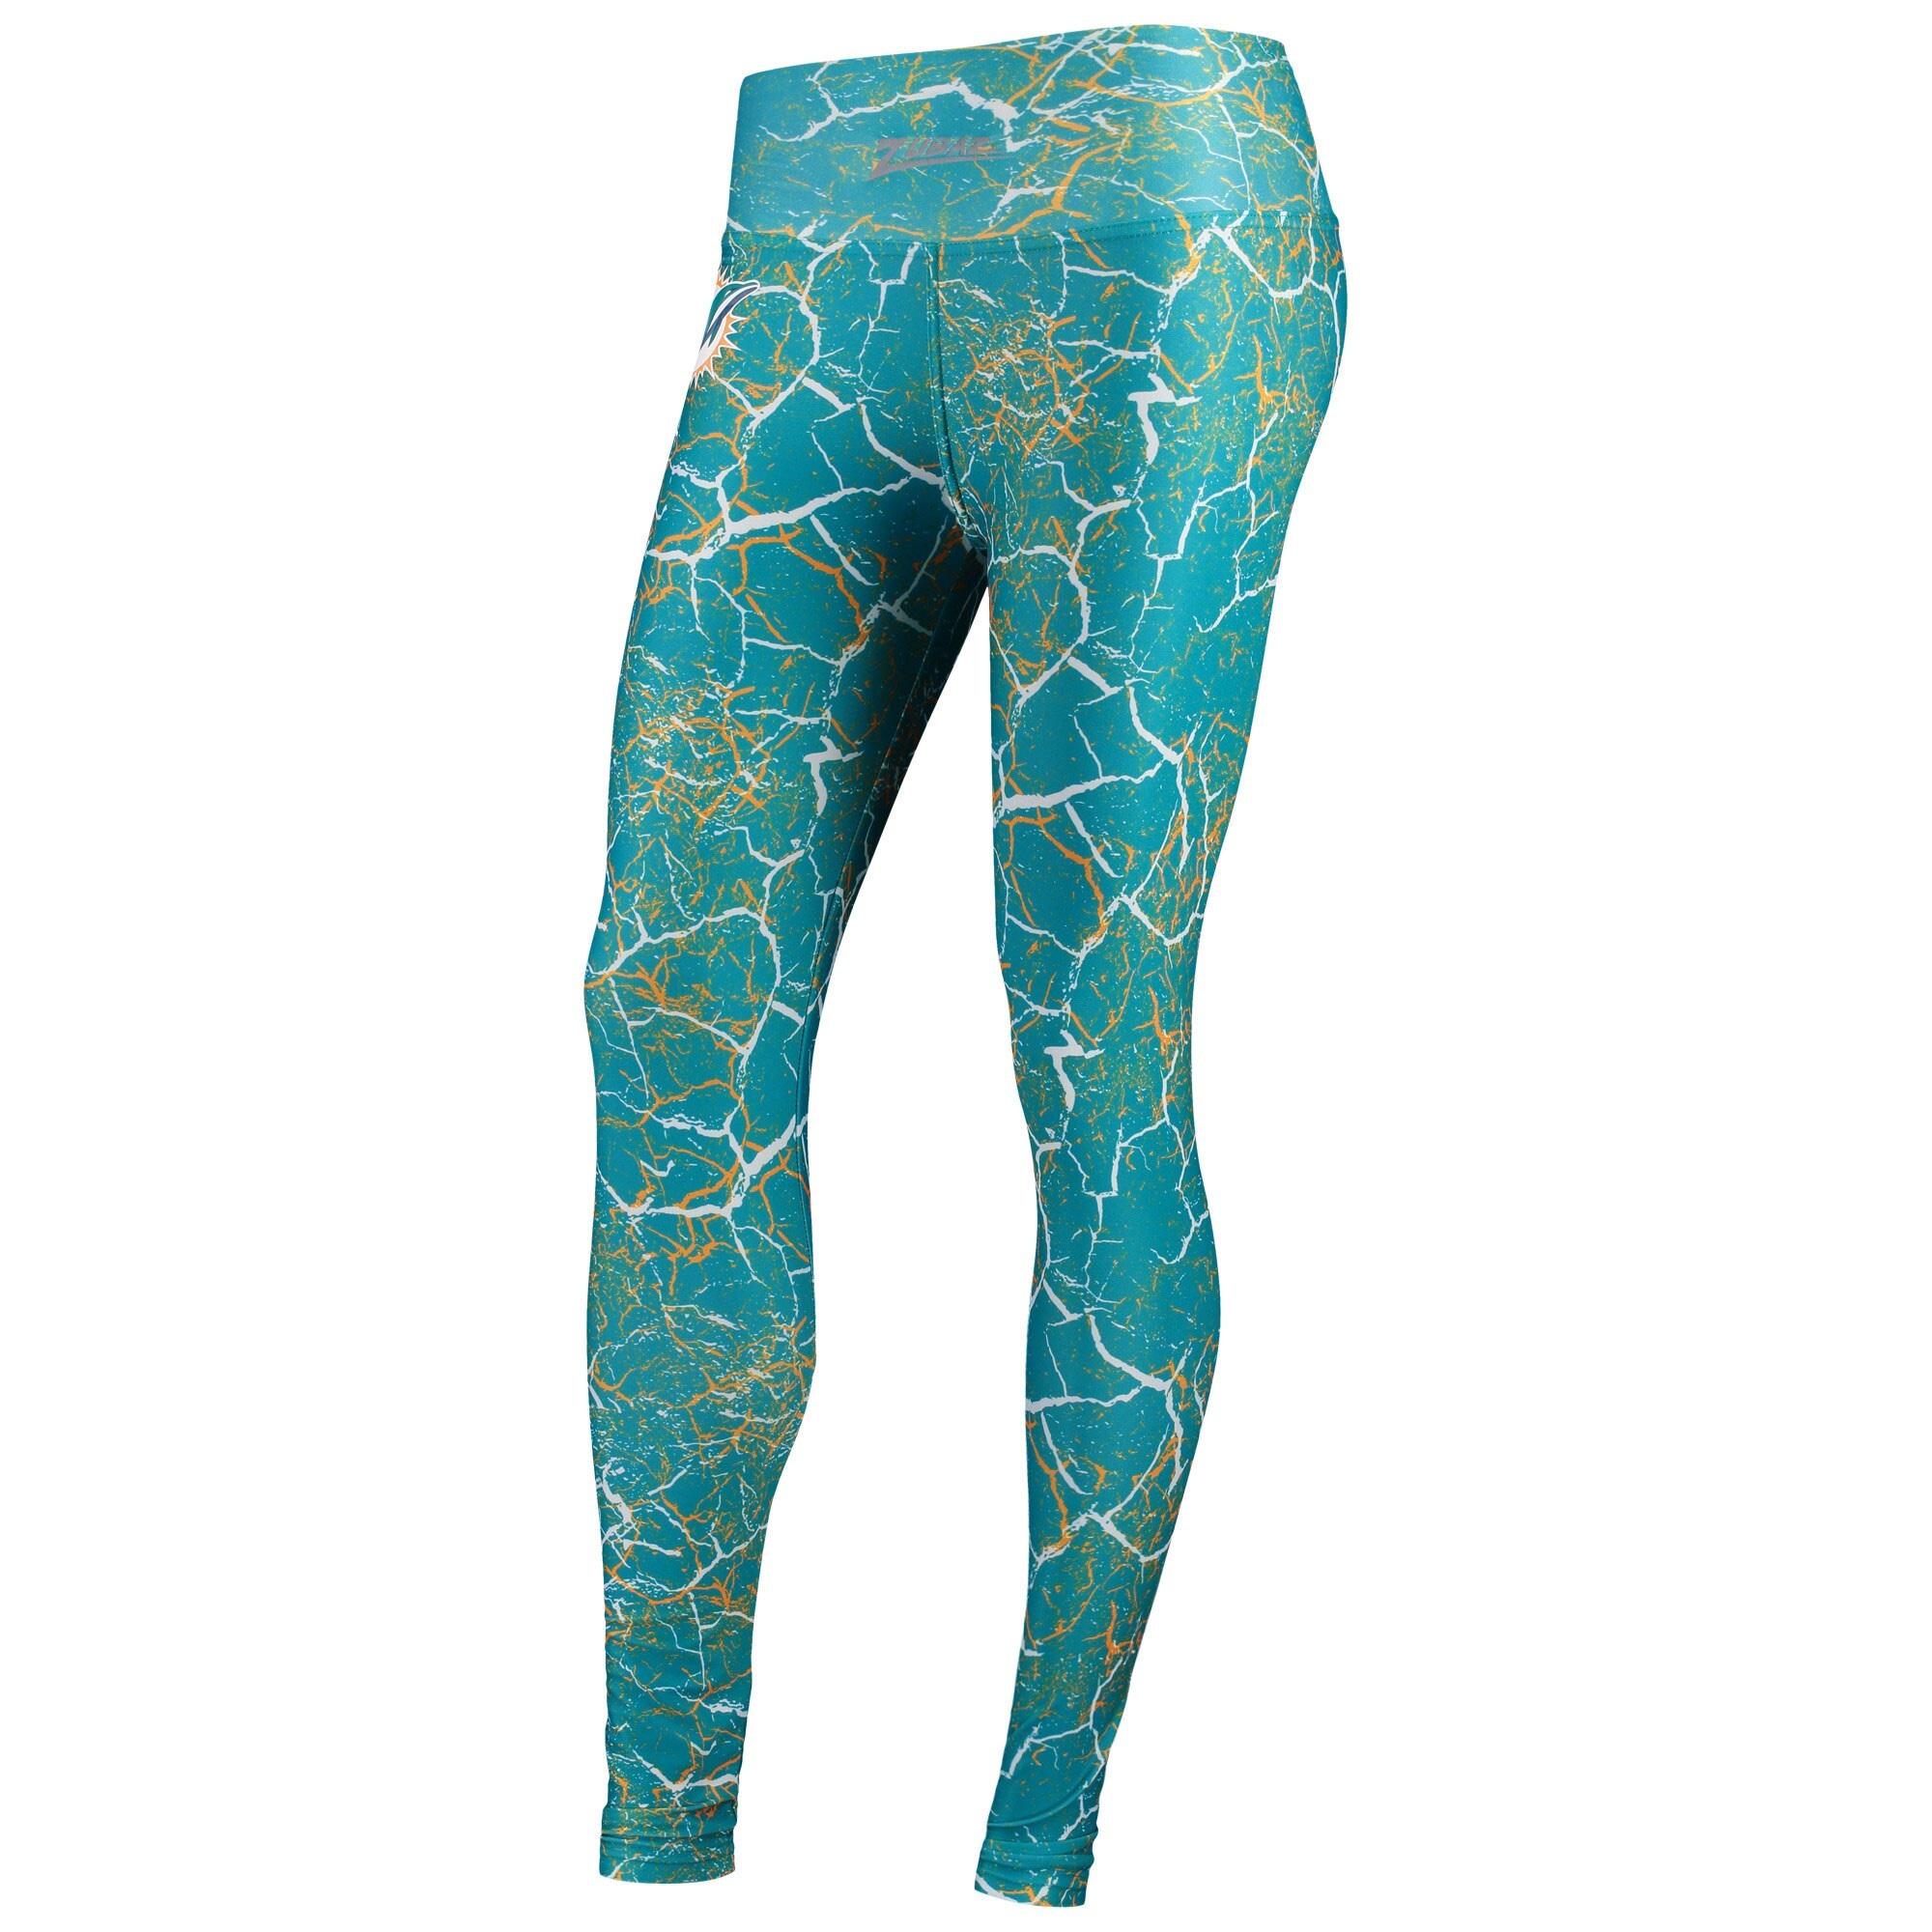 Miami Dolphins Zubaz Women's Marble Leggings - Aqua/Orange